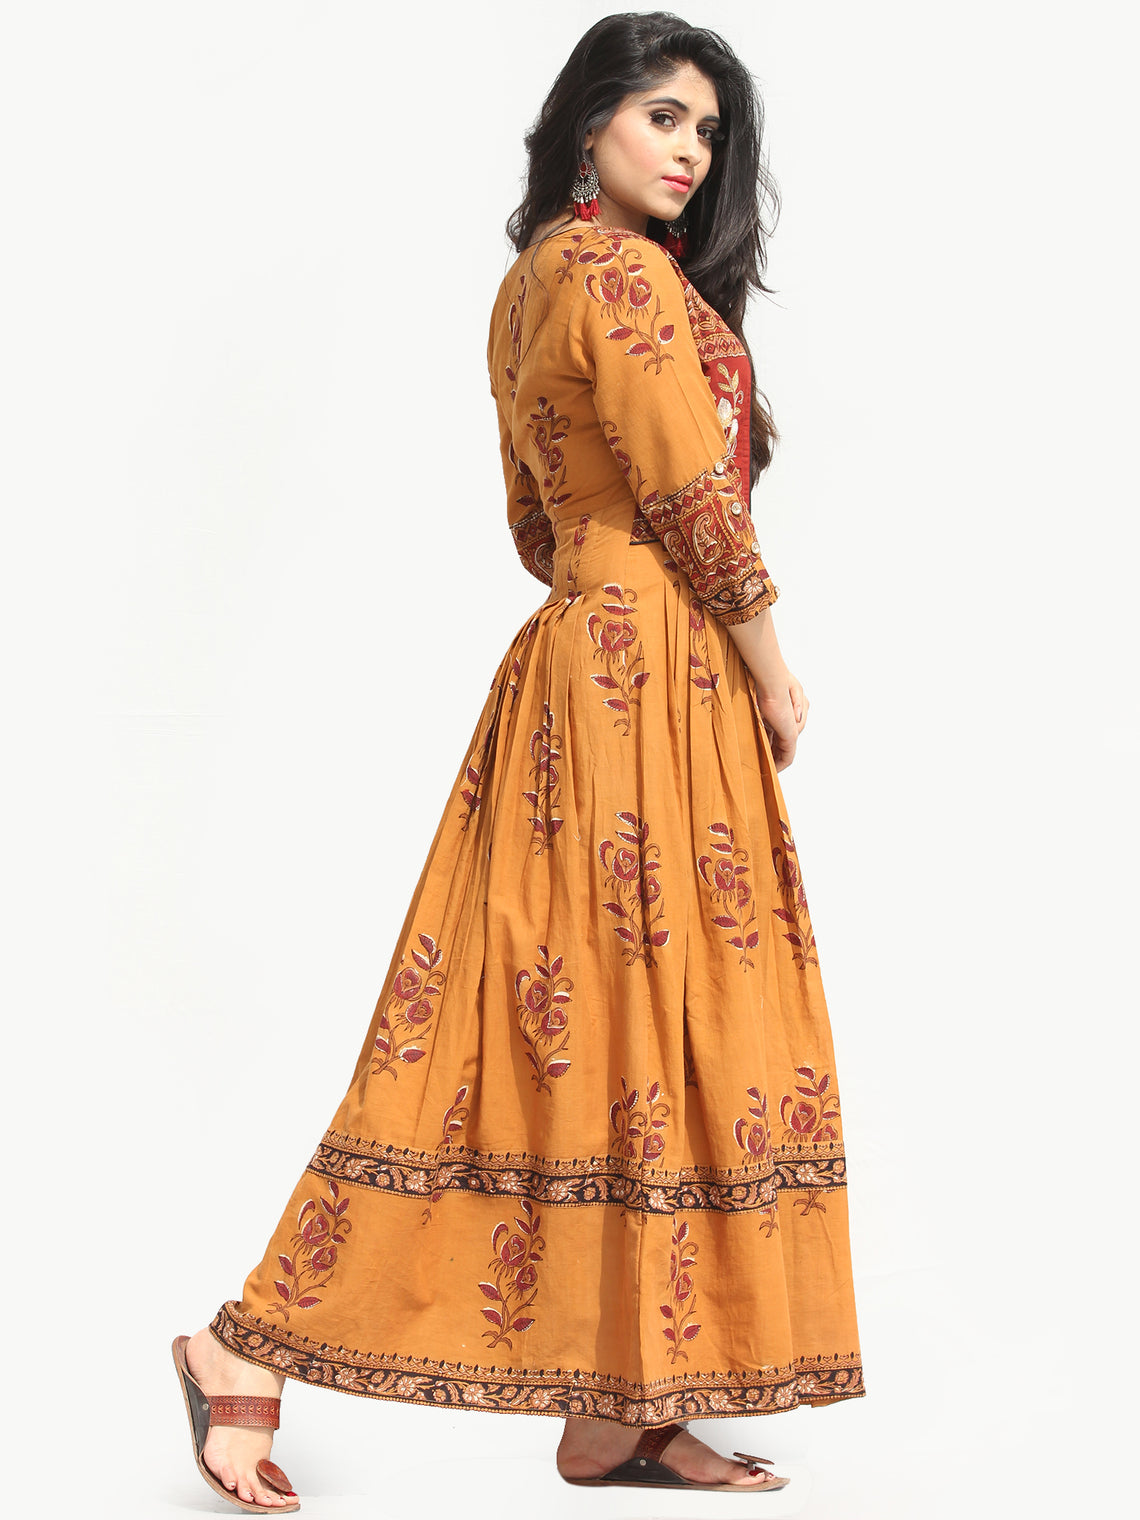 Naaz Roheen - Hand Block Printed Long Cotton Box Pleated Embroidered Jacket Dress - DS98F004